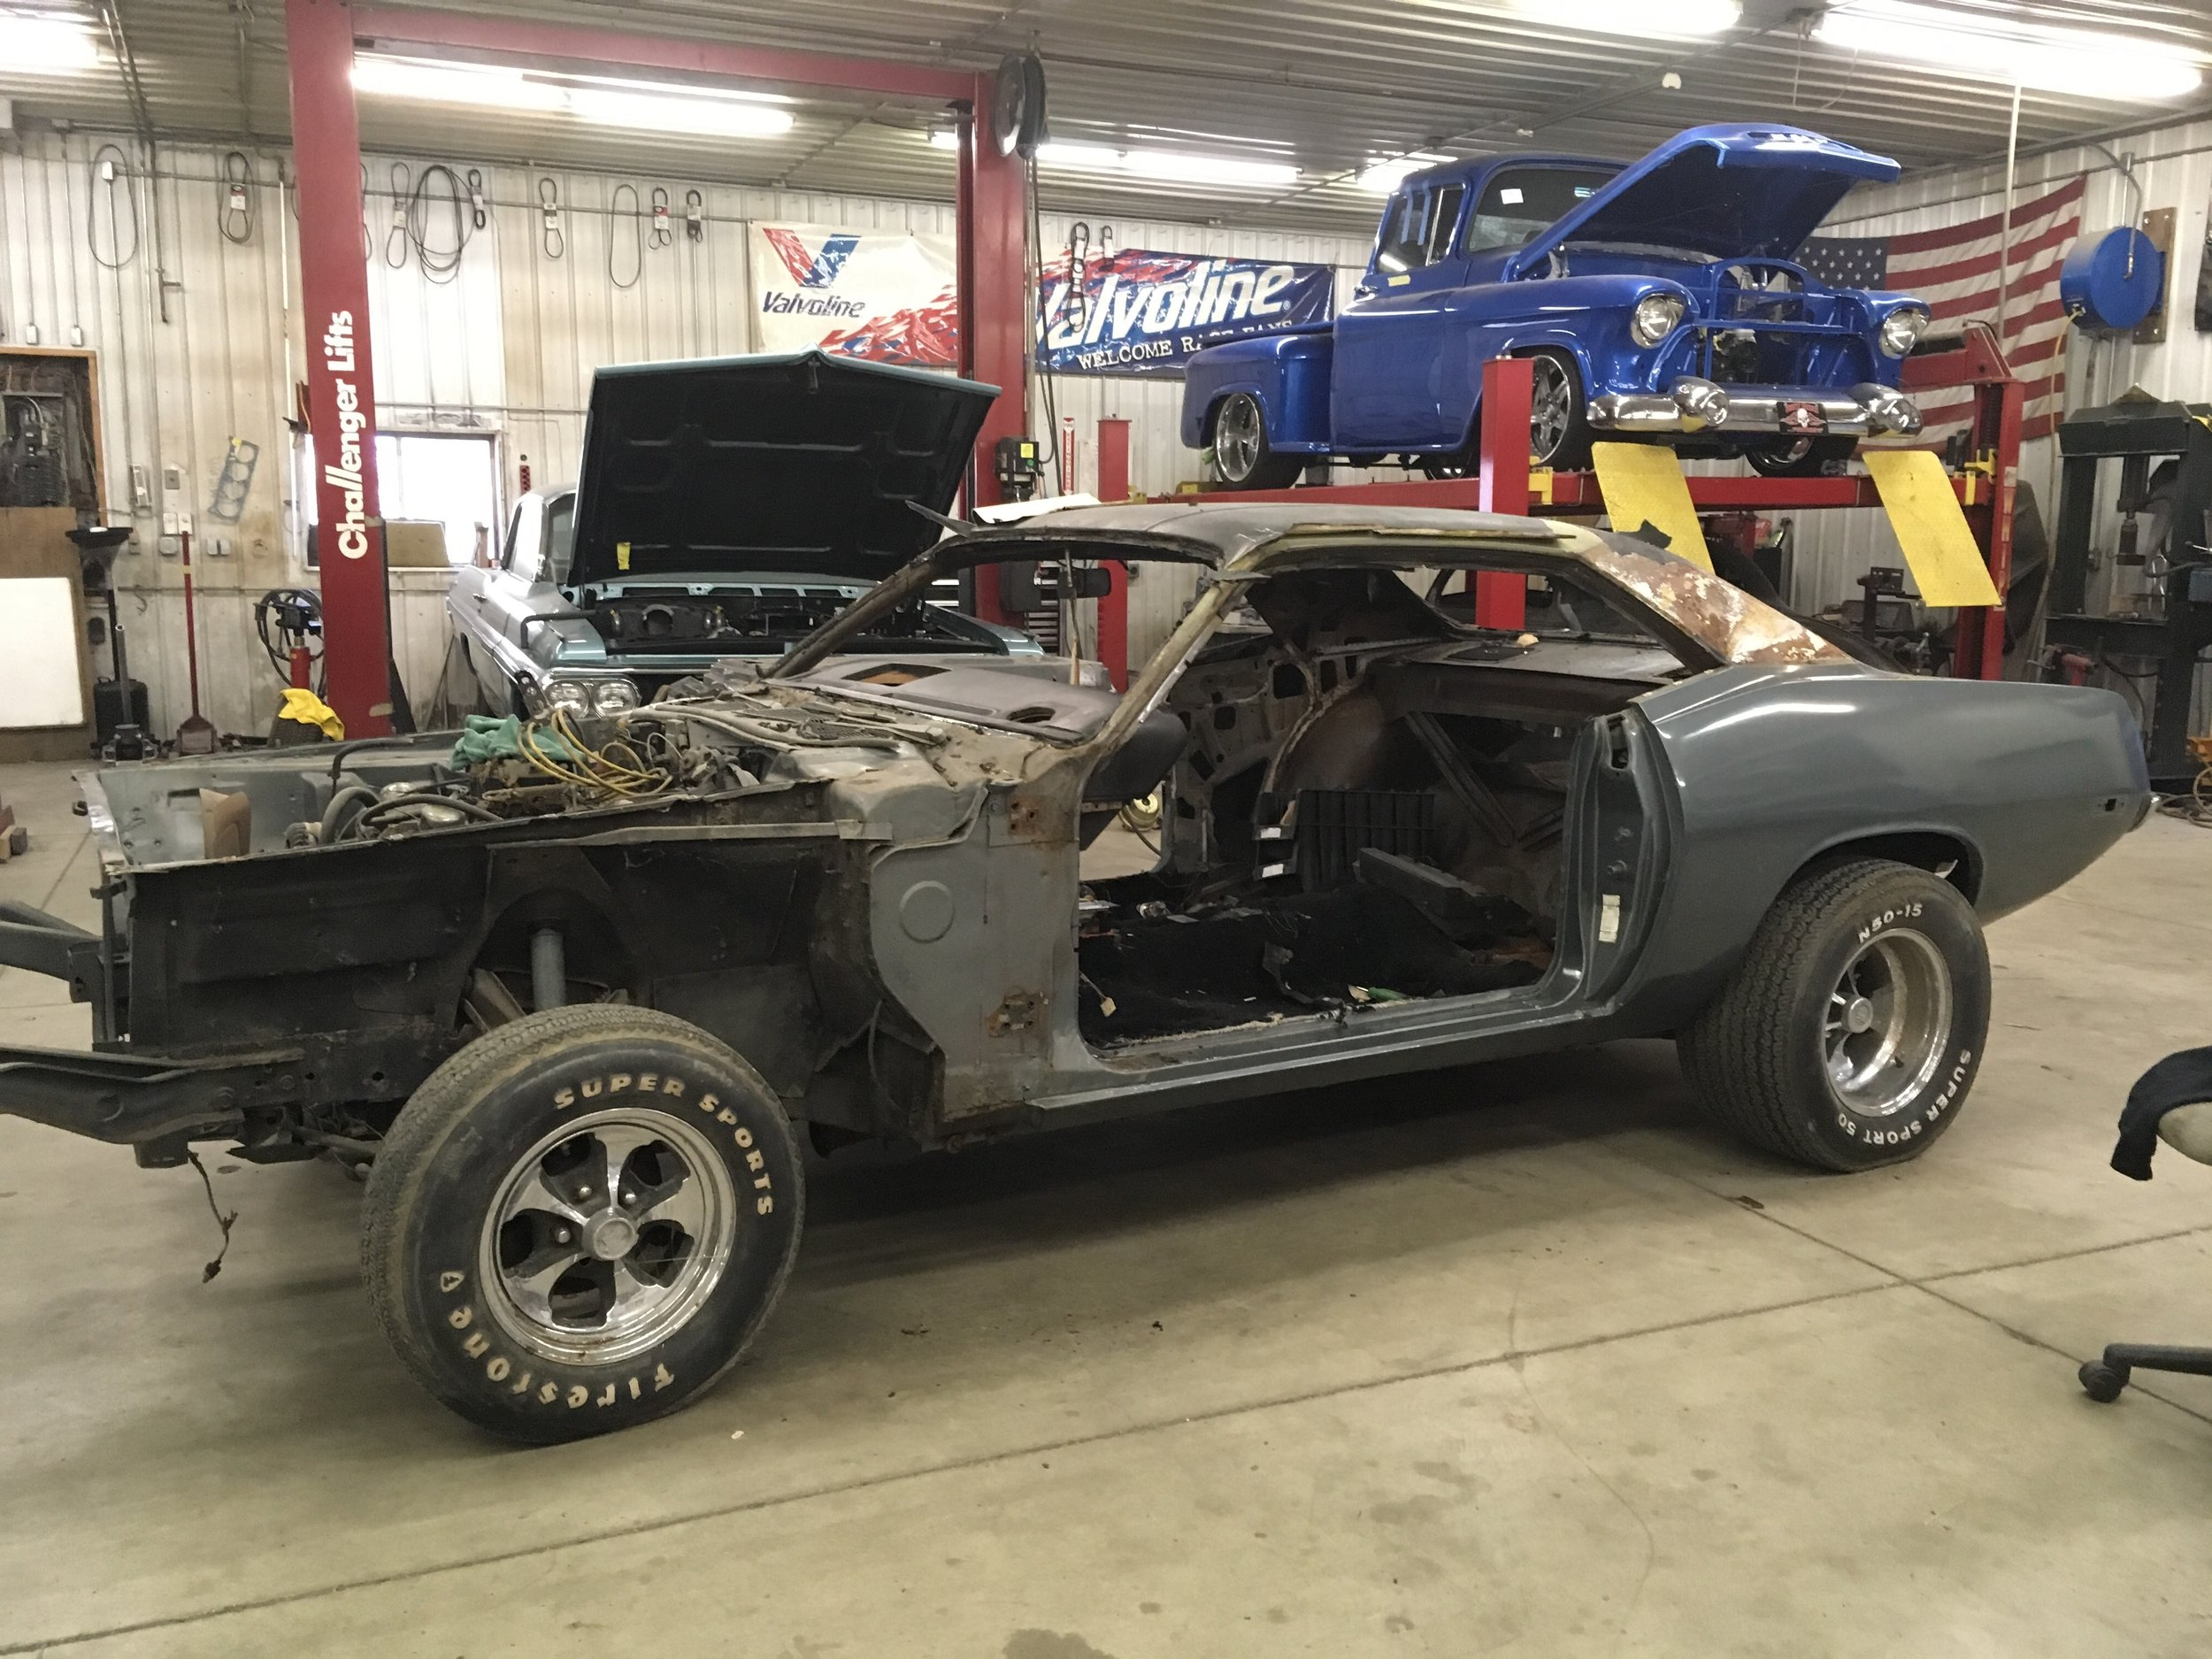 minneapolis-hot-rod-factory-car-restoration-73-barracuda.jpg